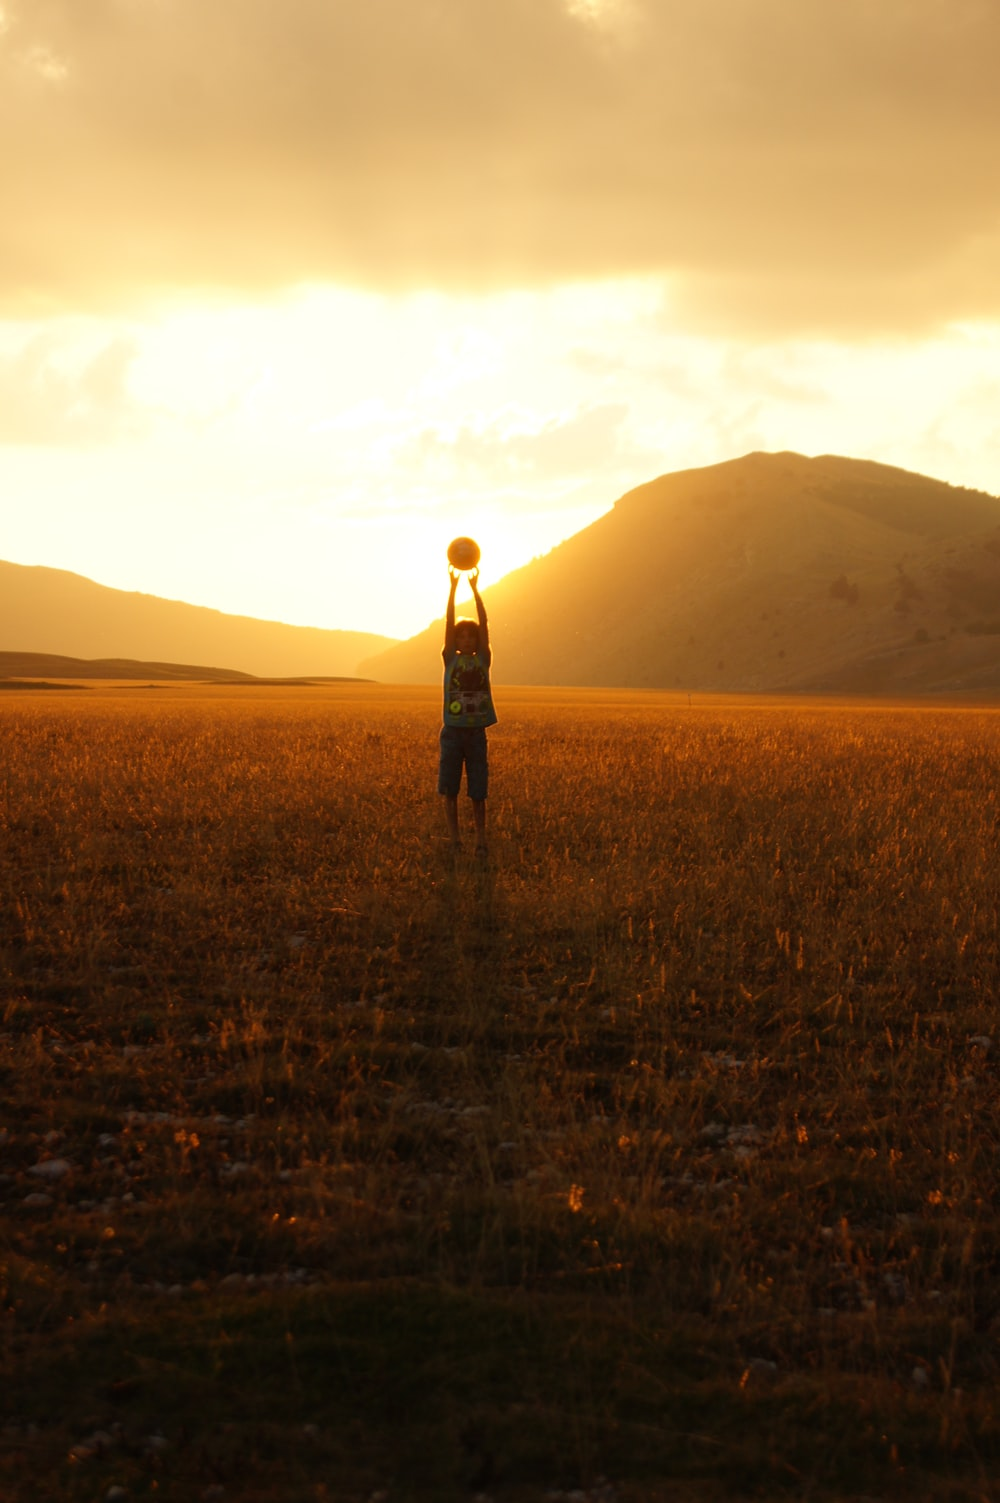 silhouette photography of person standing on field